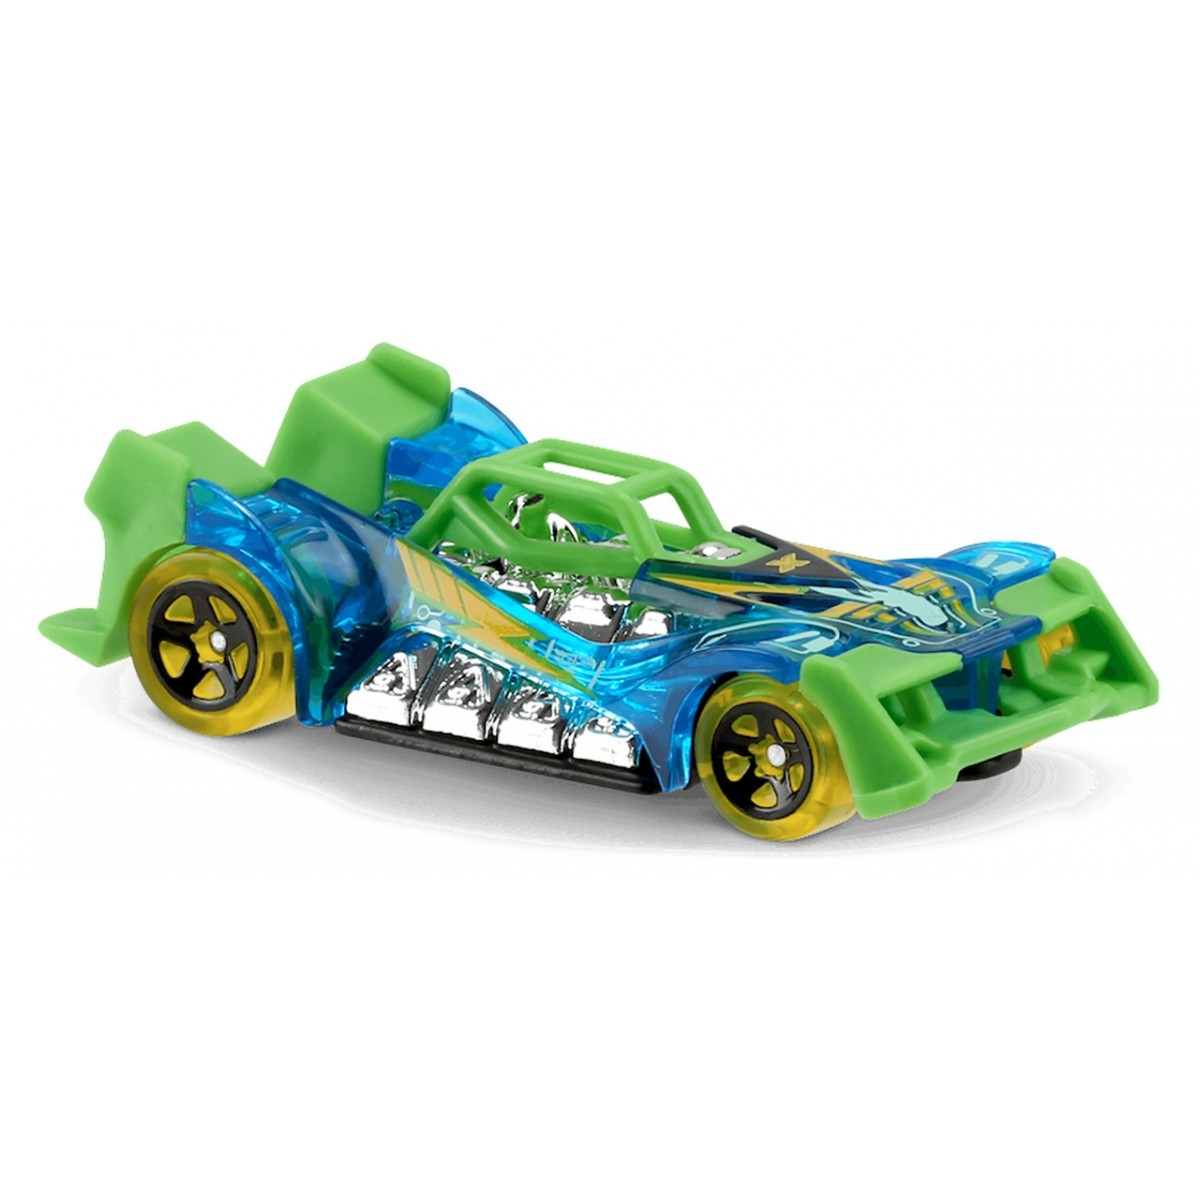 Carrinho Hot Wheels: Voltage Spike Azul e Verde